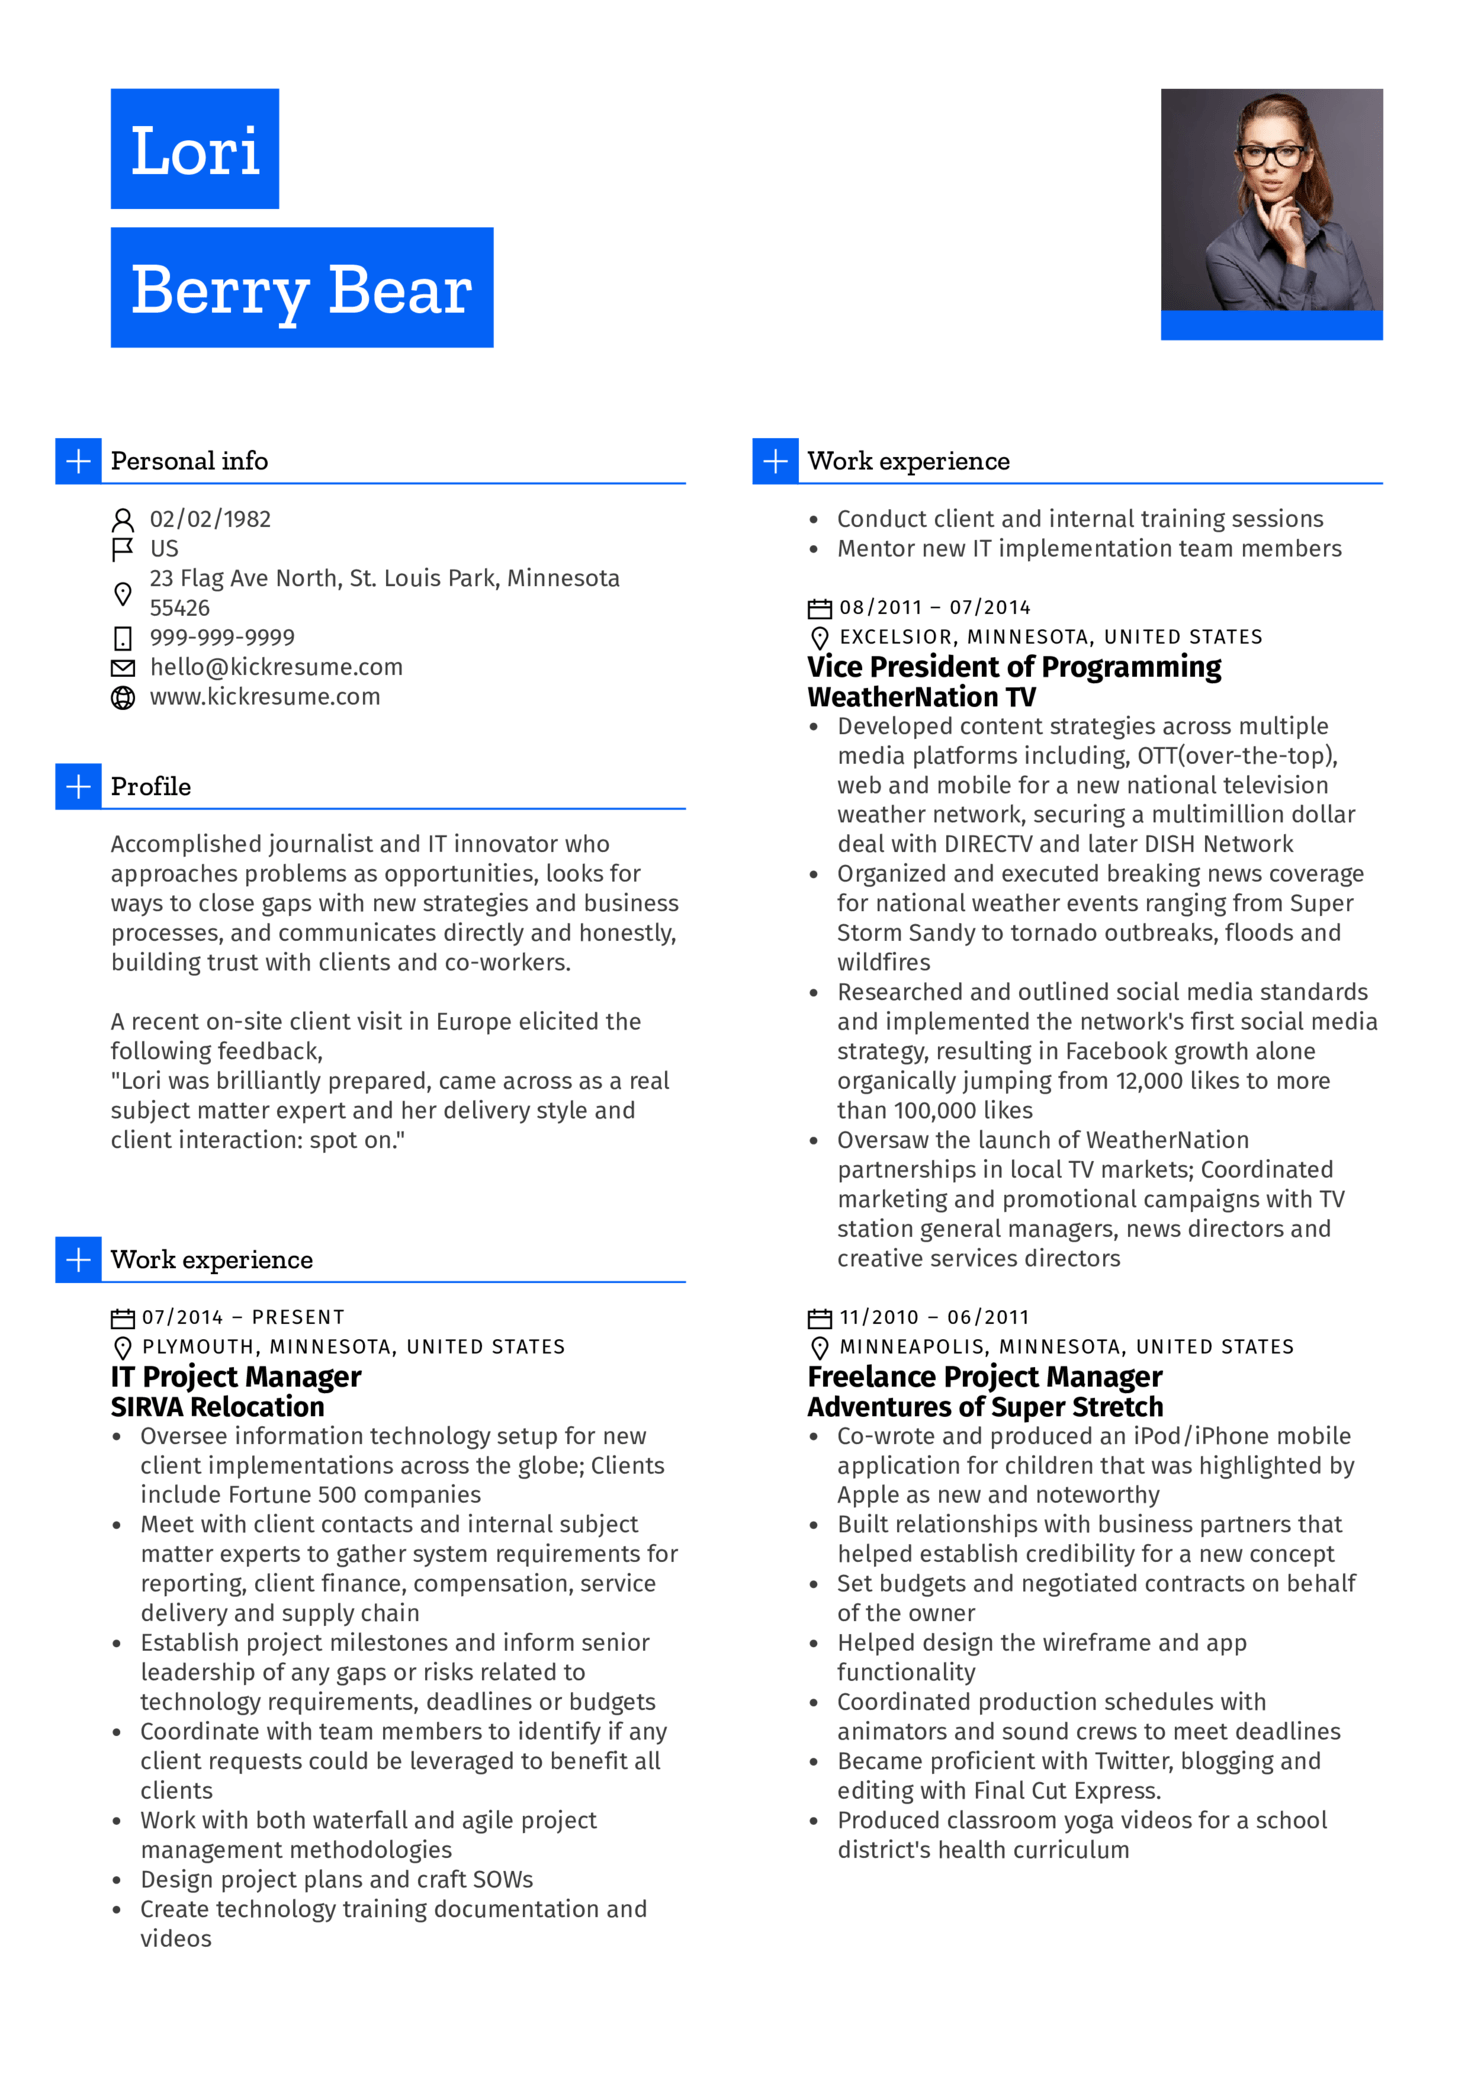 Resume Examples by Real People Project manager Journalist cv sample  Kickresume